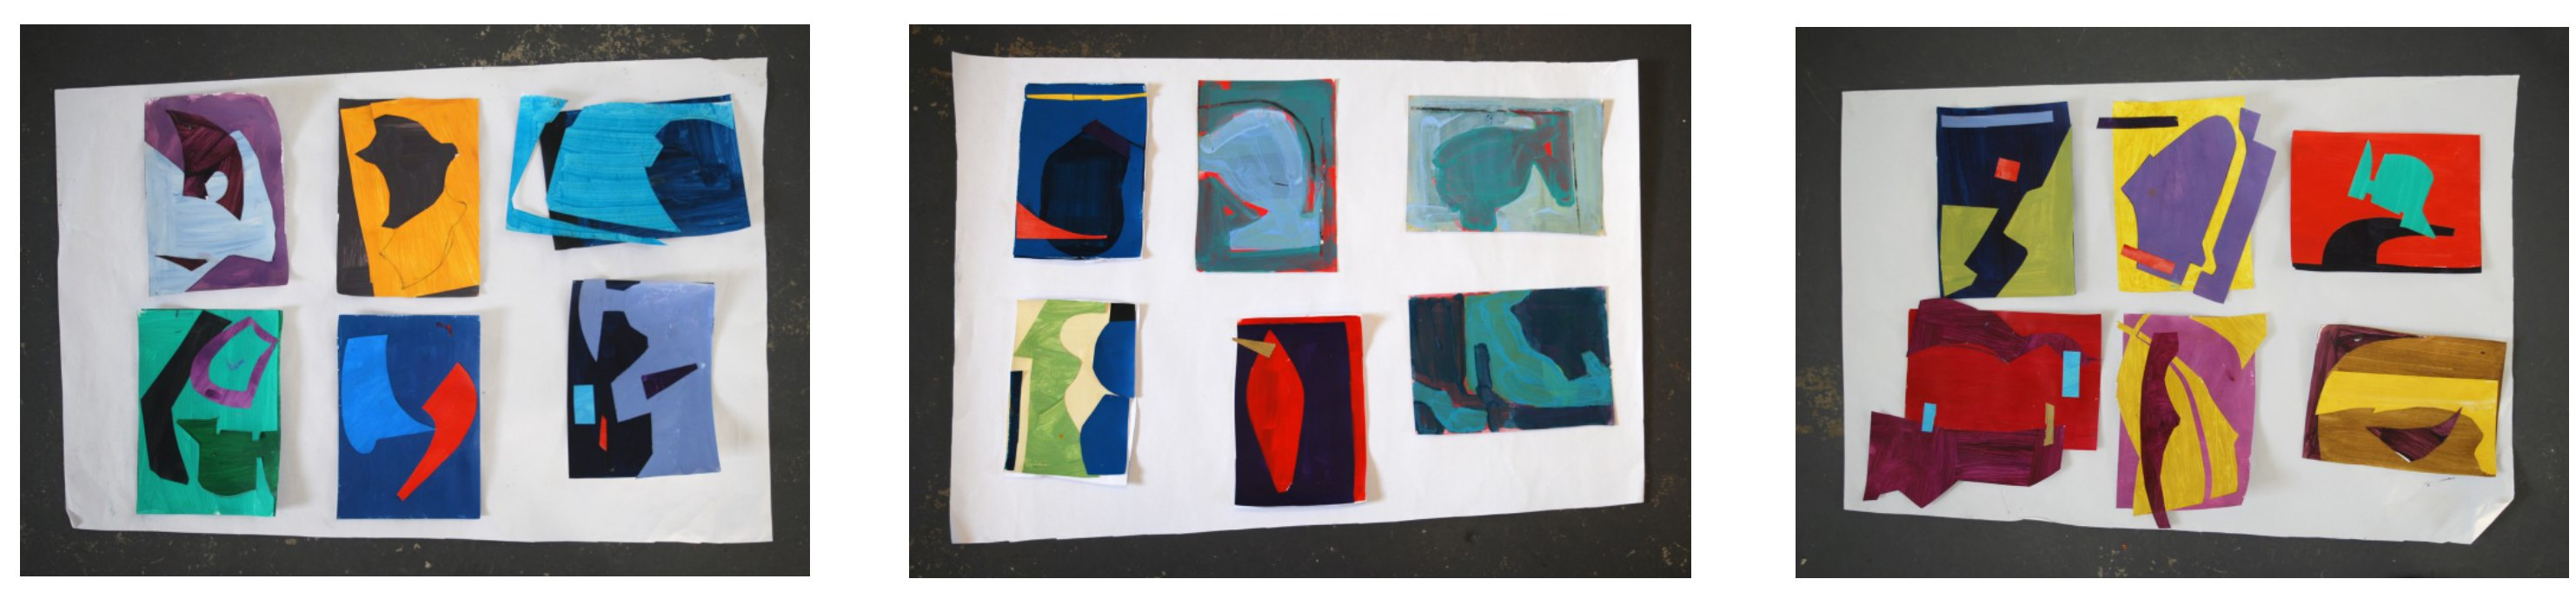 STUDIES PORTH OCT 17WEB Copy